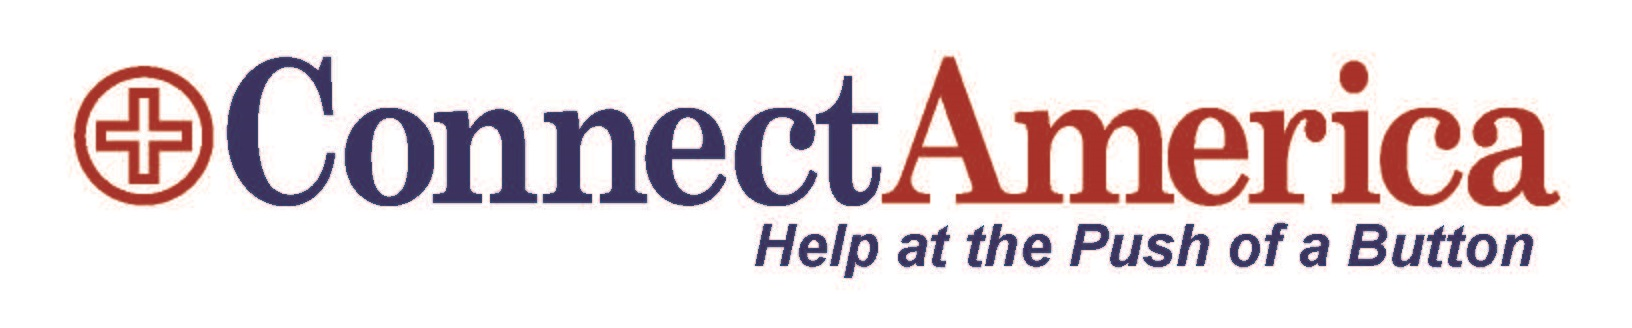 ConnectAmerica Help at the Push of a Button